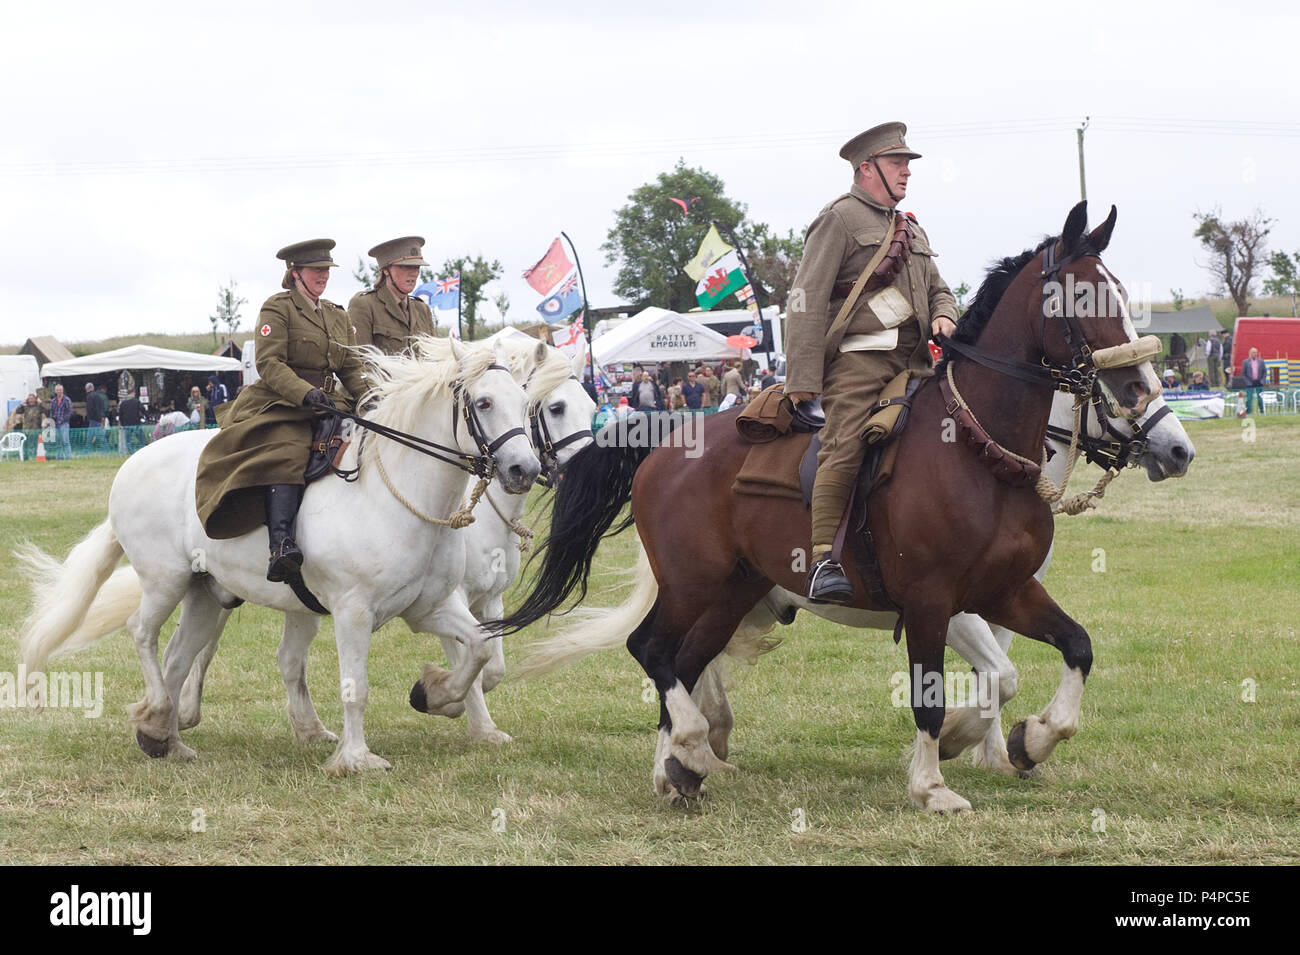 Animals at war, world war one, living history event - Stock Image